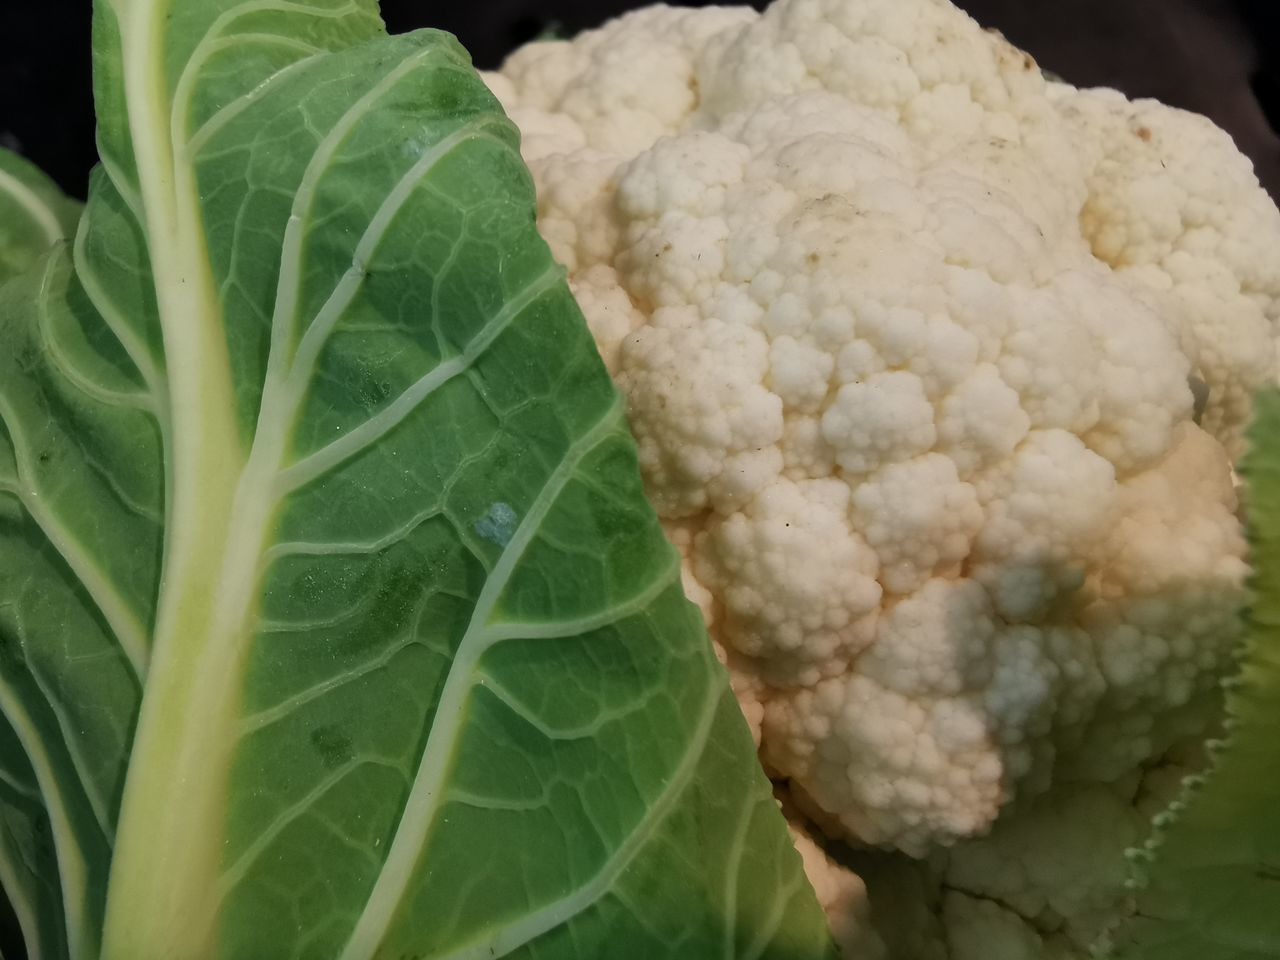 leaf, plant part, close-up, healthy eating, freshness, growth, food, food and drink, wellbeing, green color, plant, no people, nature, day, vegetable, beauty in nature, leaf vein, focus on foreground, outdoors, cauliflower